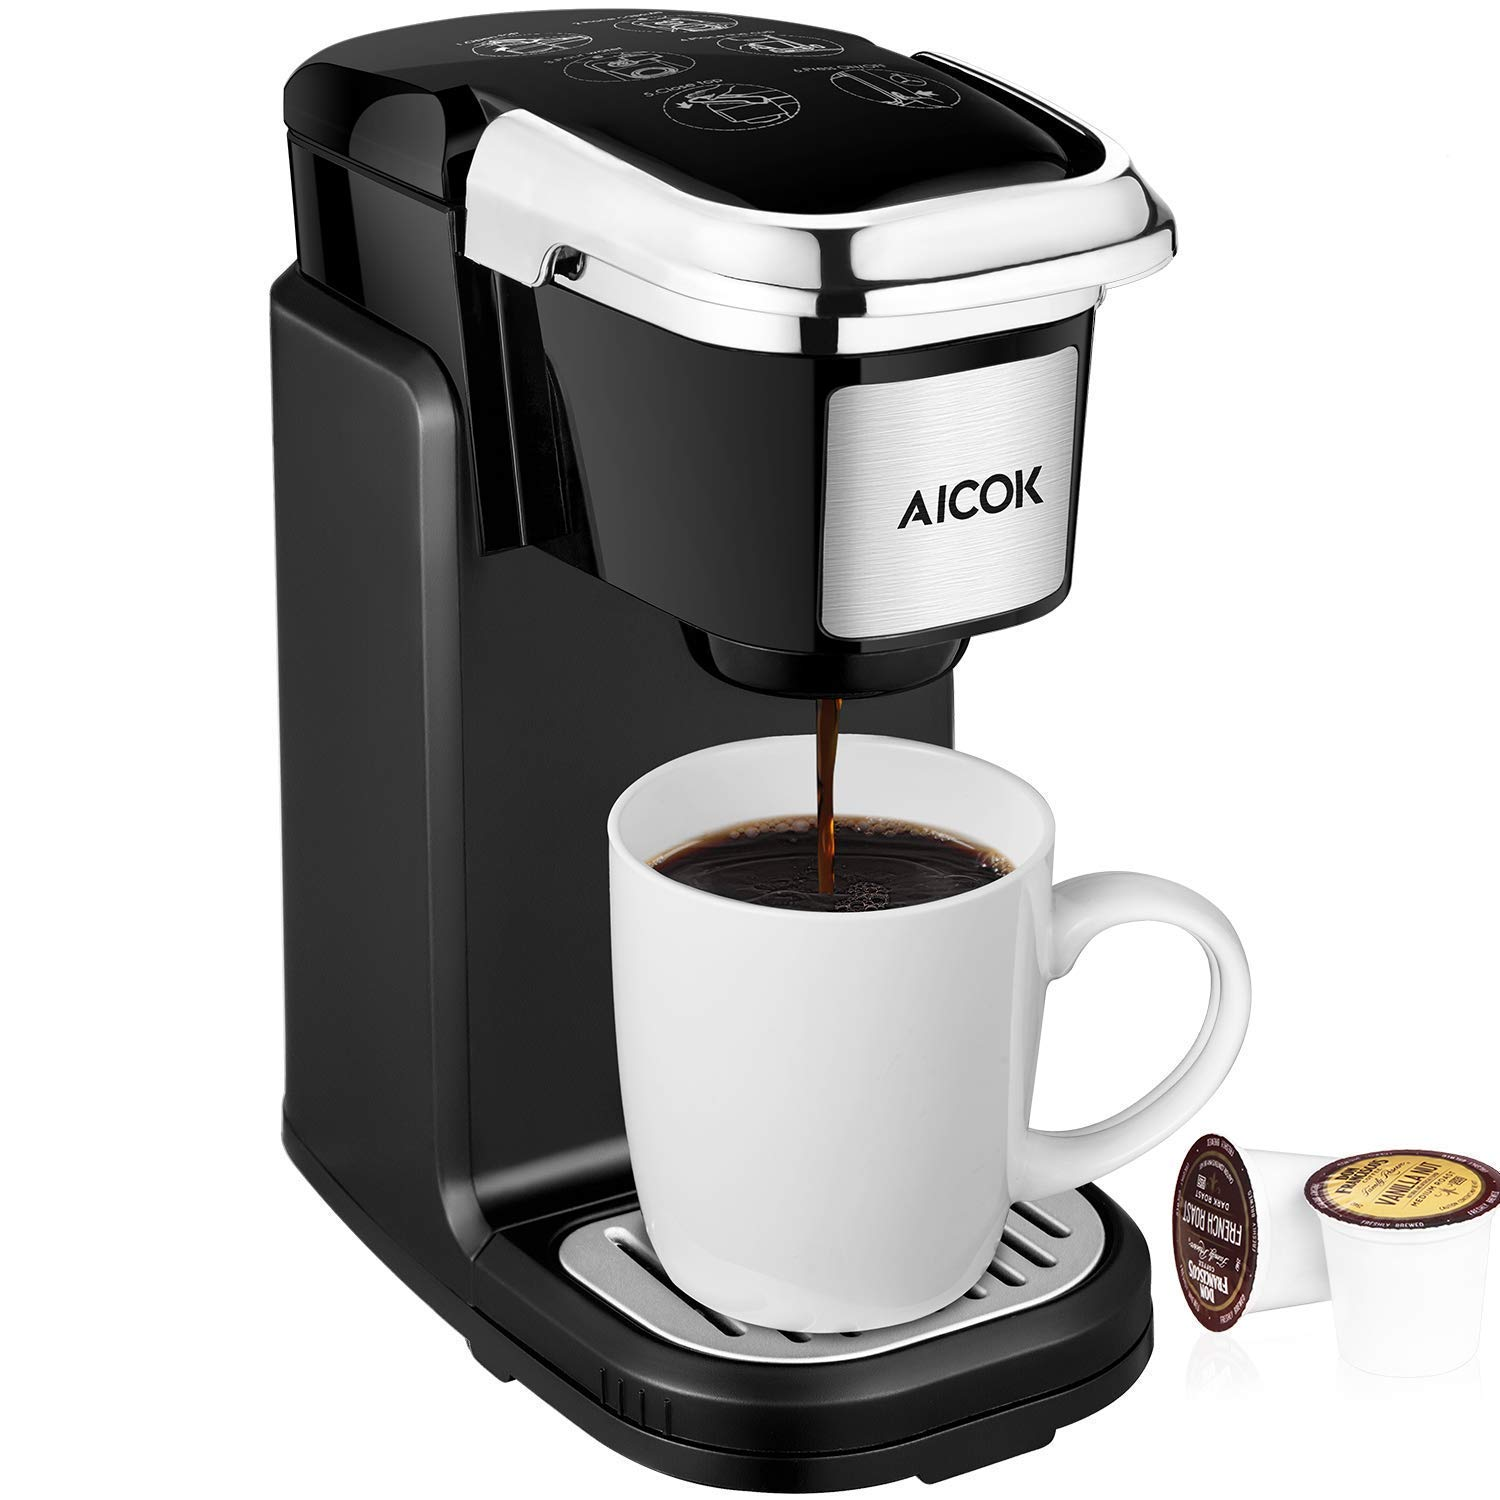 AICOK Single Cup Coffee Maker, Single Serve Coffee Brewer with Removable Cover for Most Single Cup Pods including K-CUP pods, Quick Brew Technology, 800W, Black by AICOK